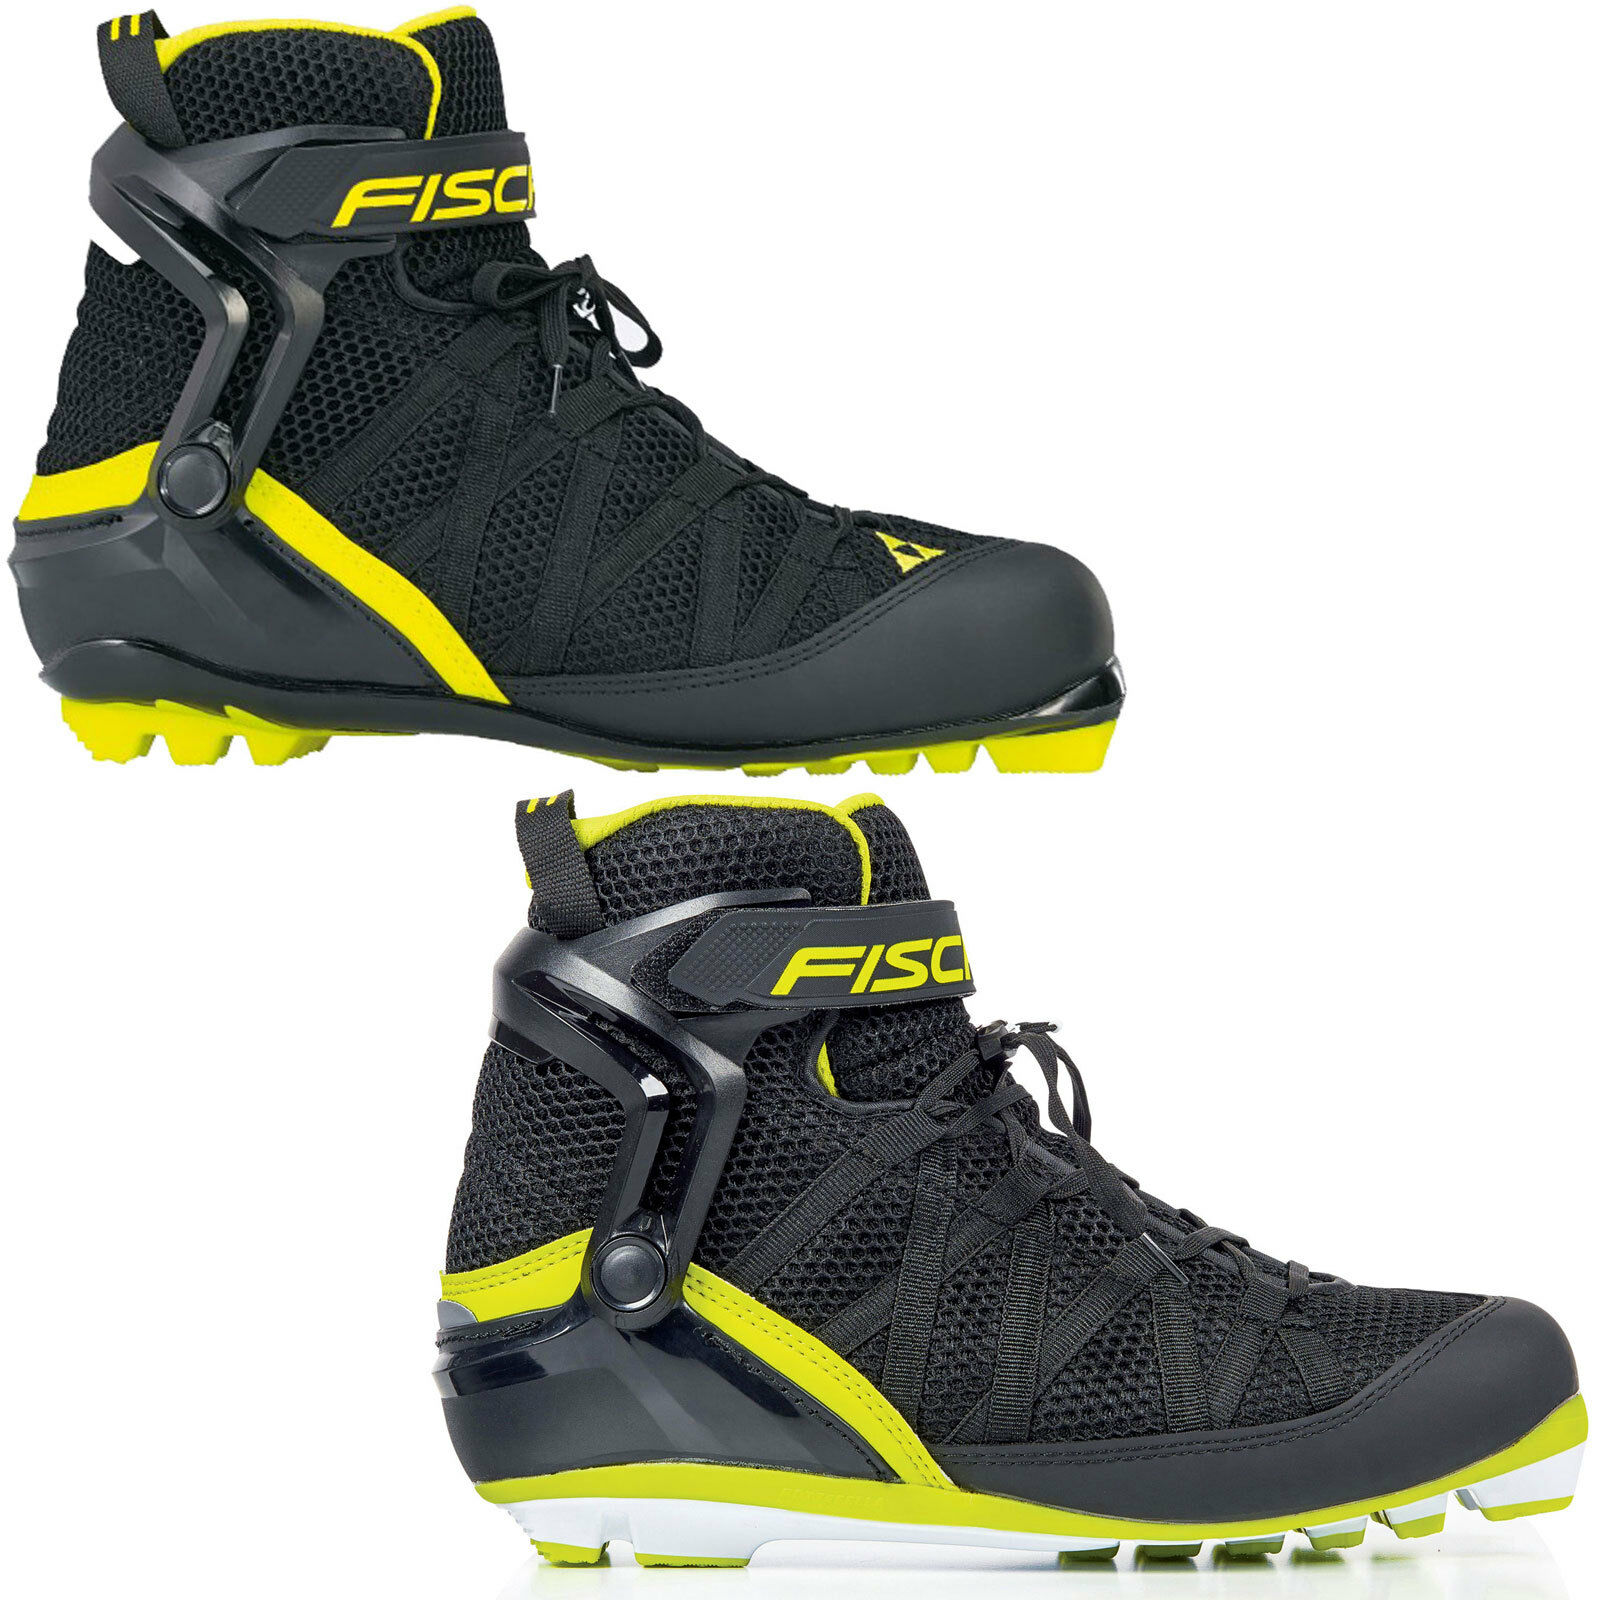 Fischer RC Scooter Combi Roller Ski-boots Ski  Scooter Boots Unisex S  Classic  credit guarantee